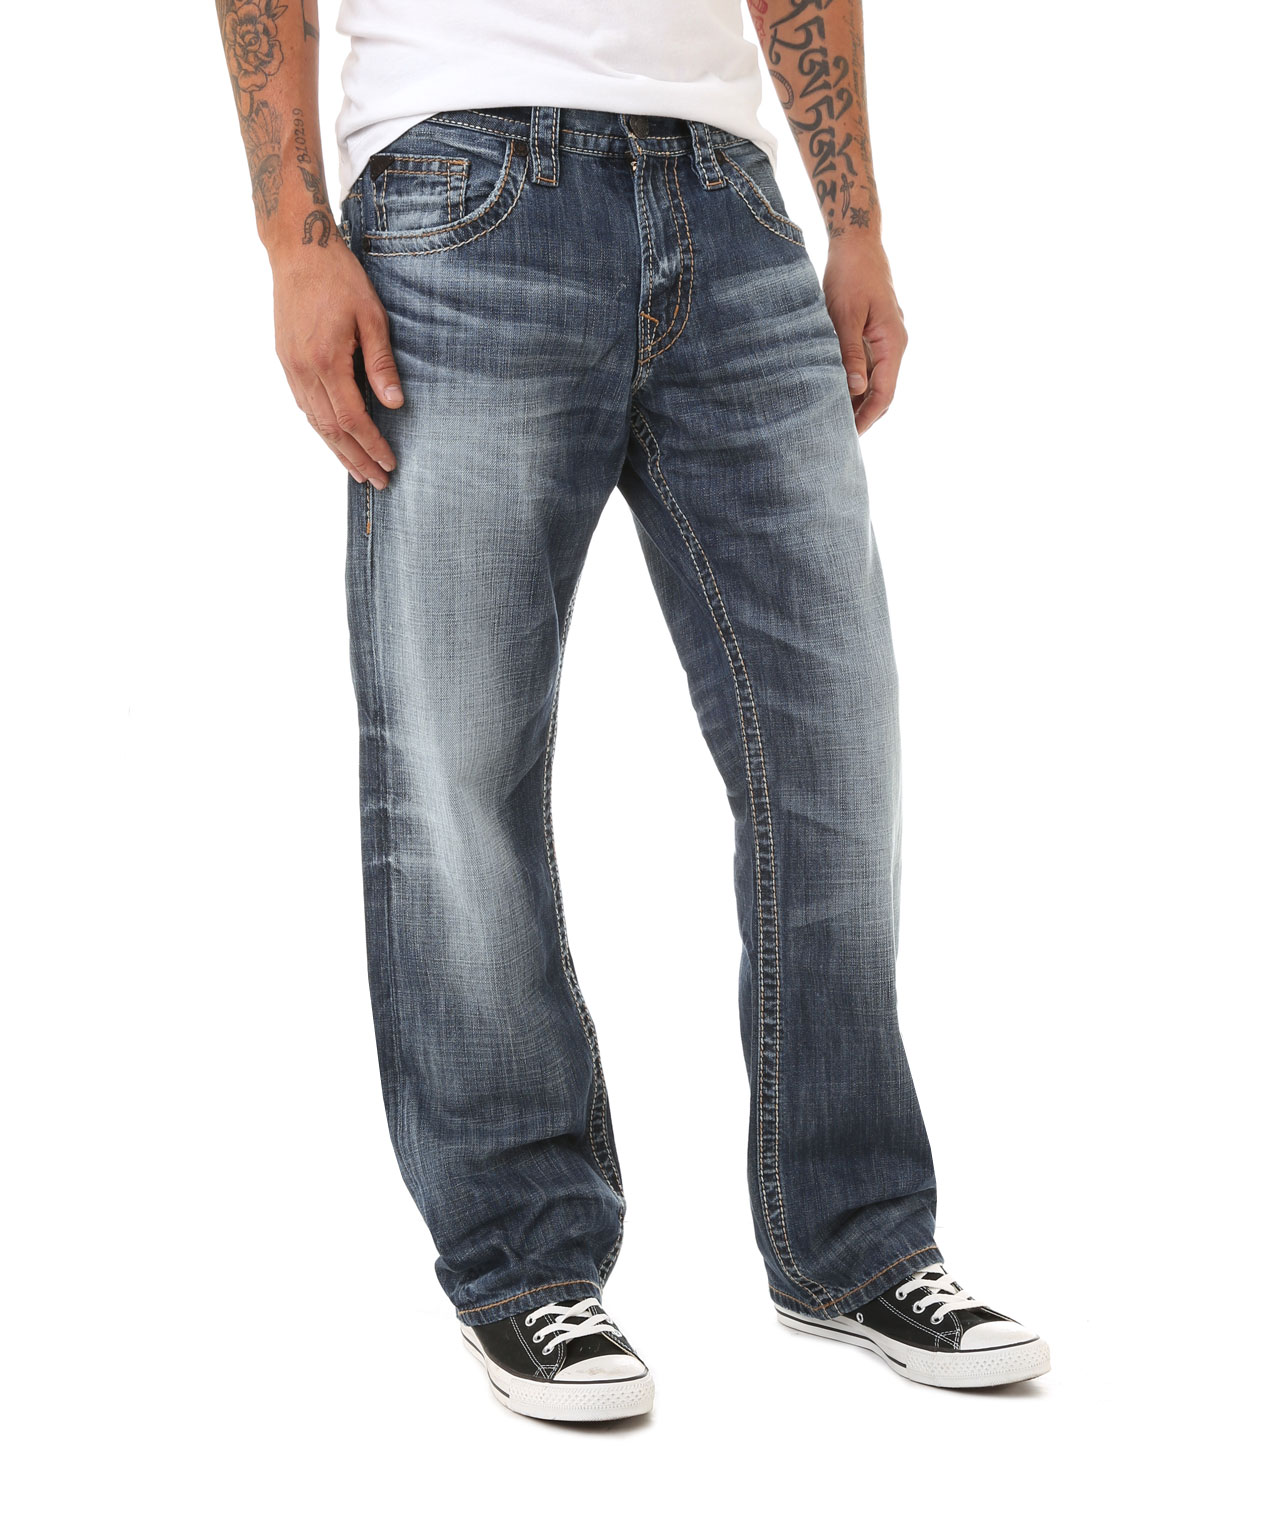 gordie ld309 | silver jeans co